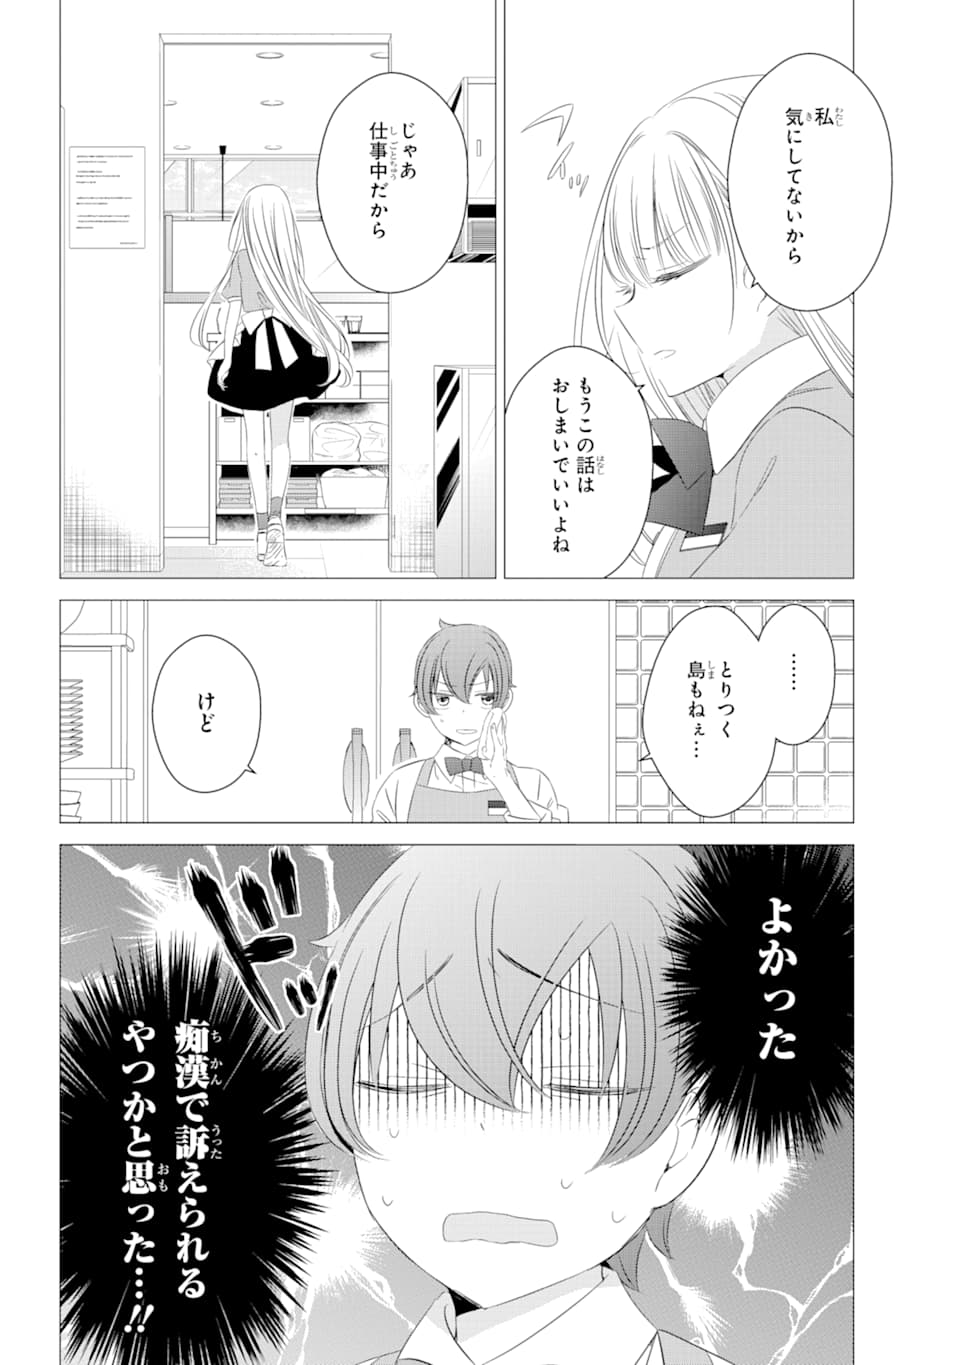 Manga Raw Studio Apartment Good Lighting Angel Included Chapter 04